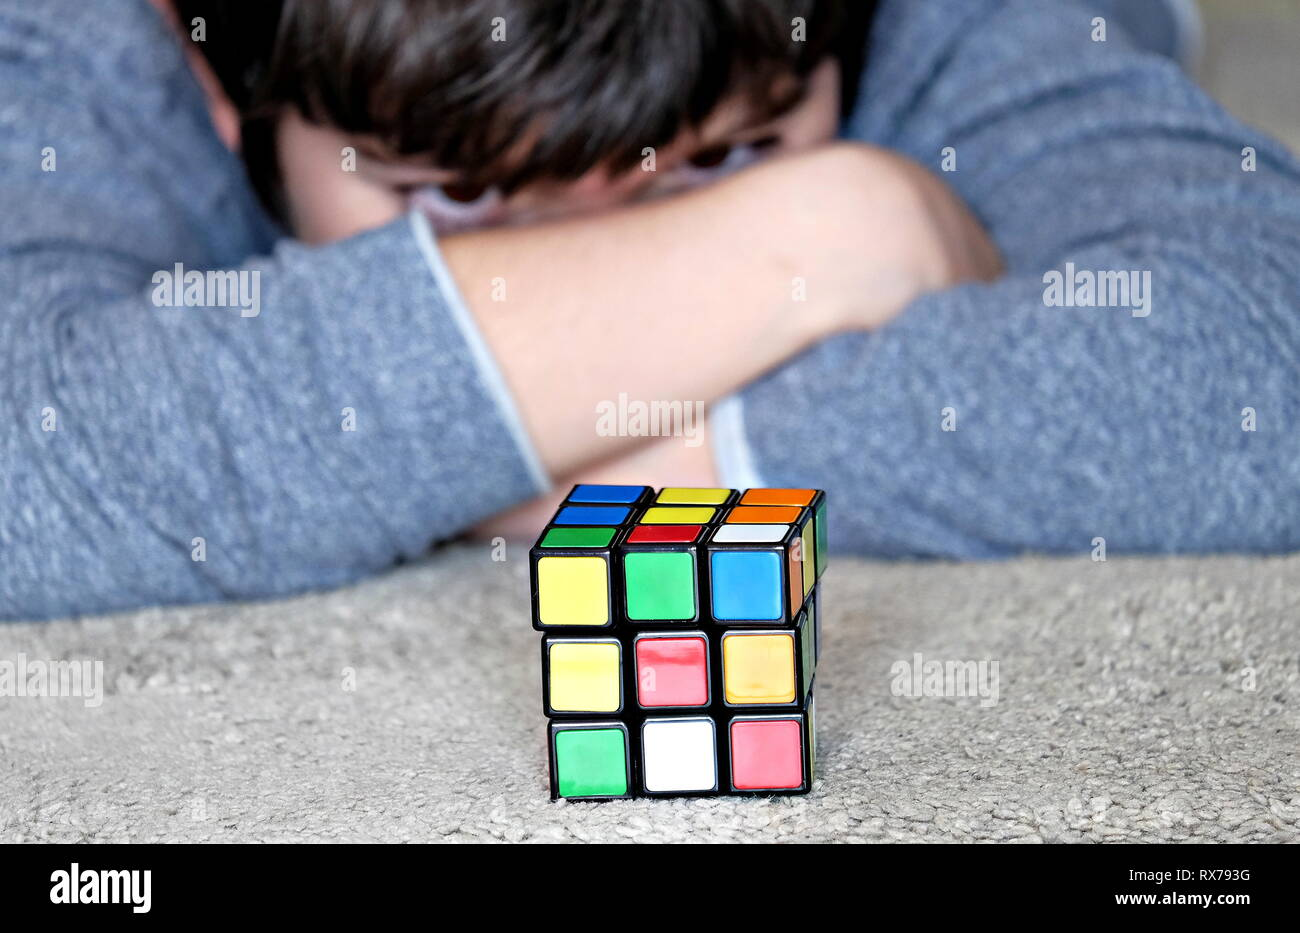 kid enjoying Rubik's cube, searching a solution - Stock Image